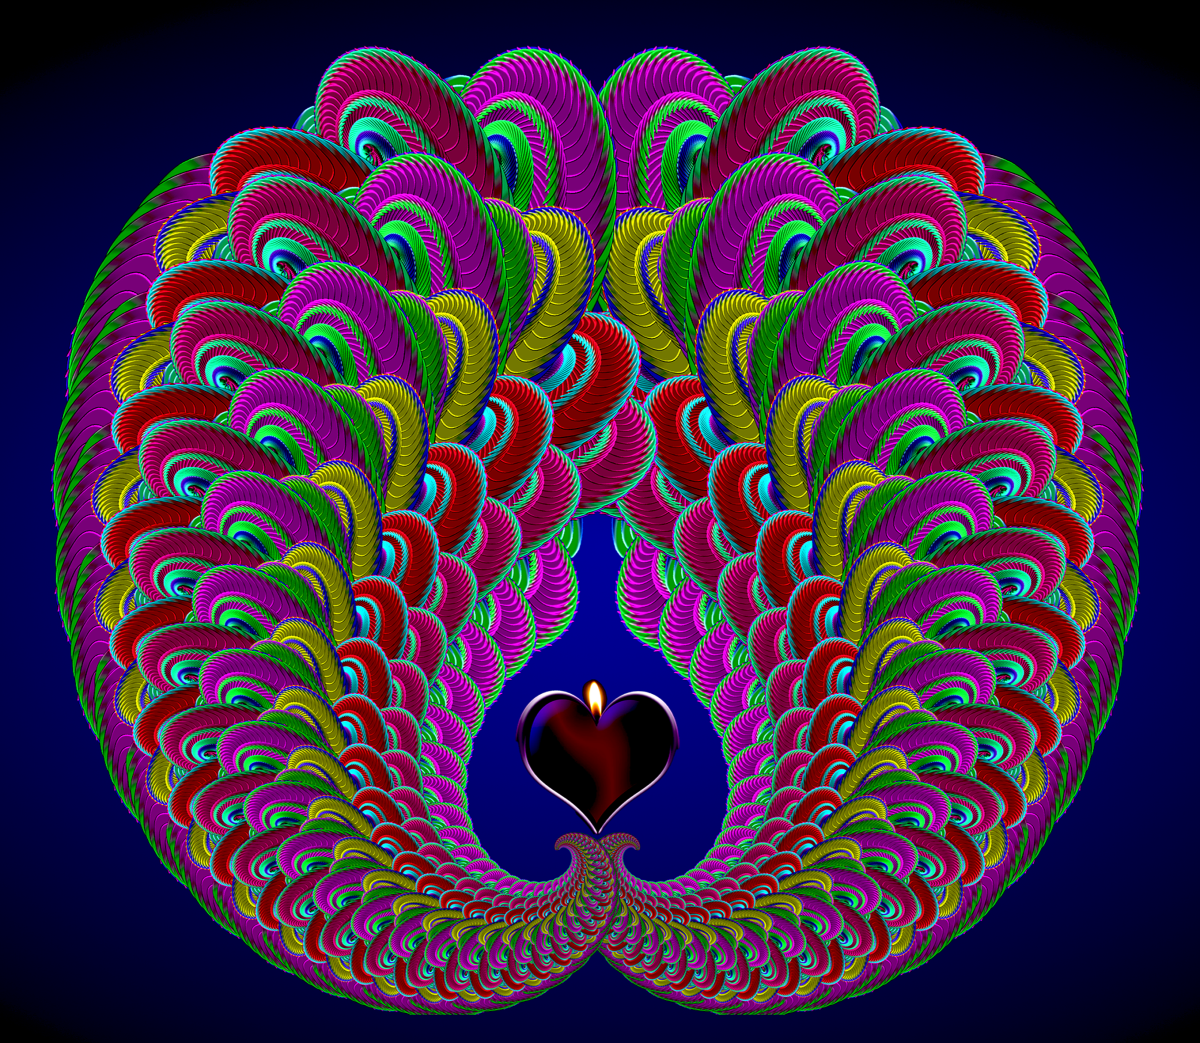 How to Draw Peacock Fractal Patterns with Photoshop